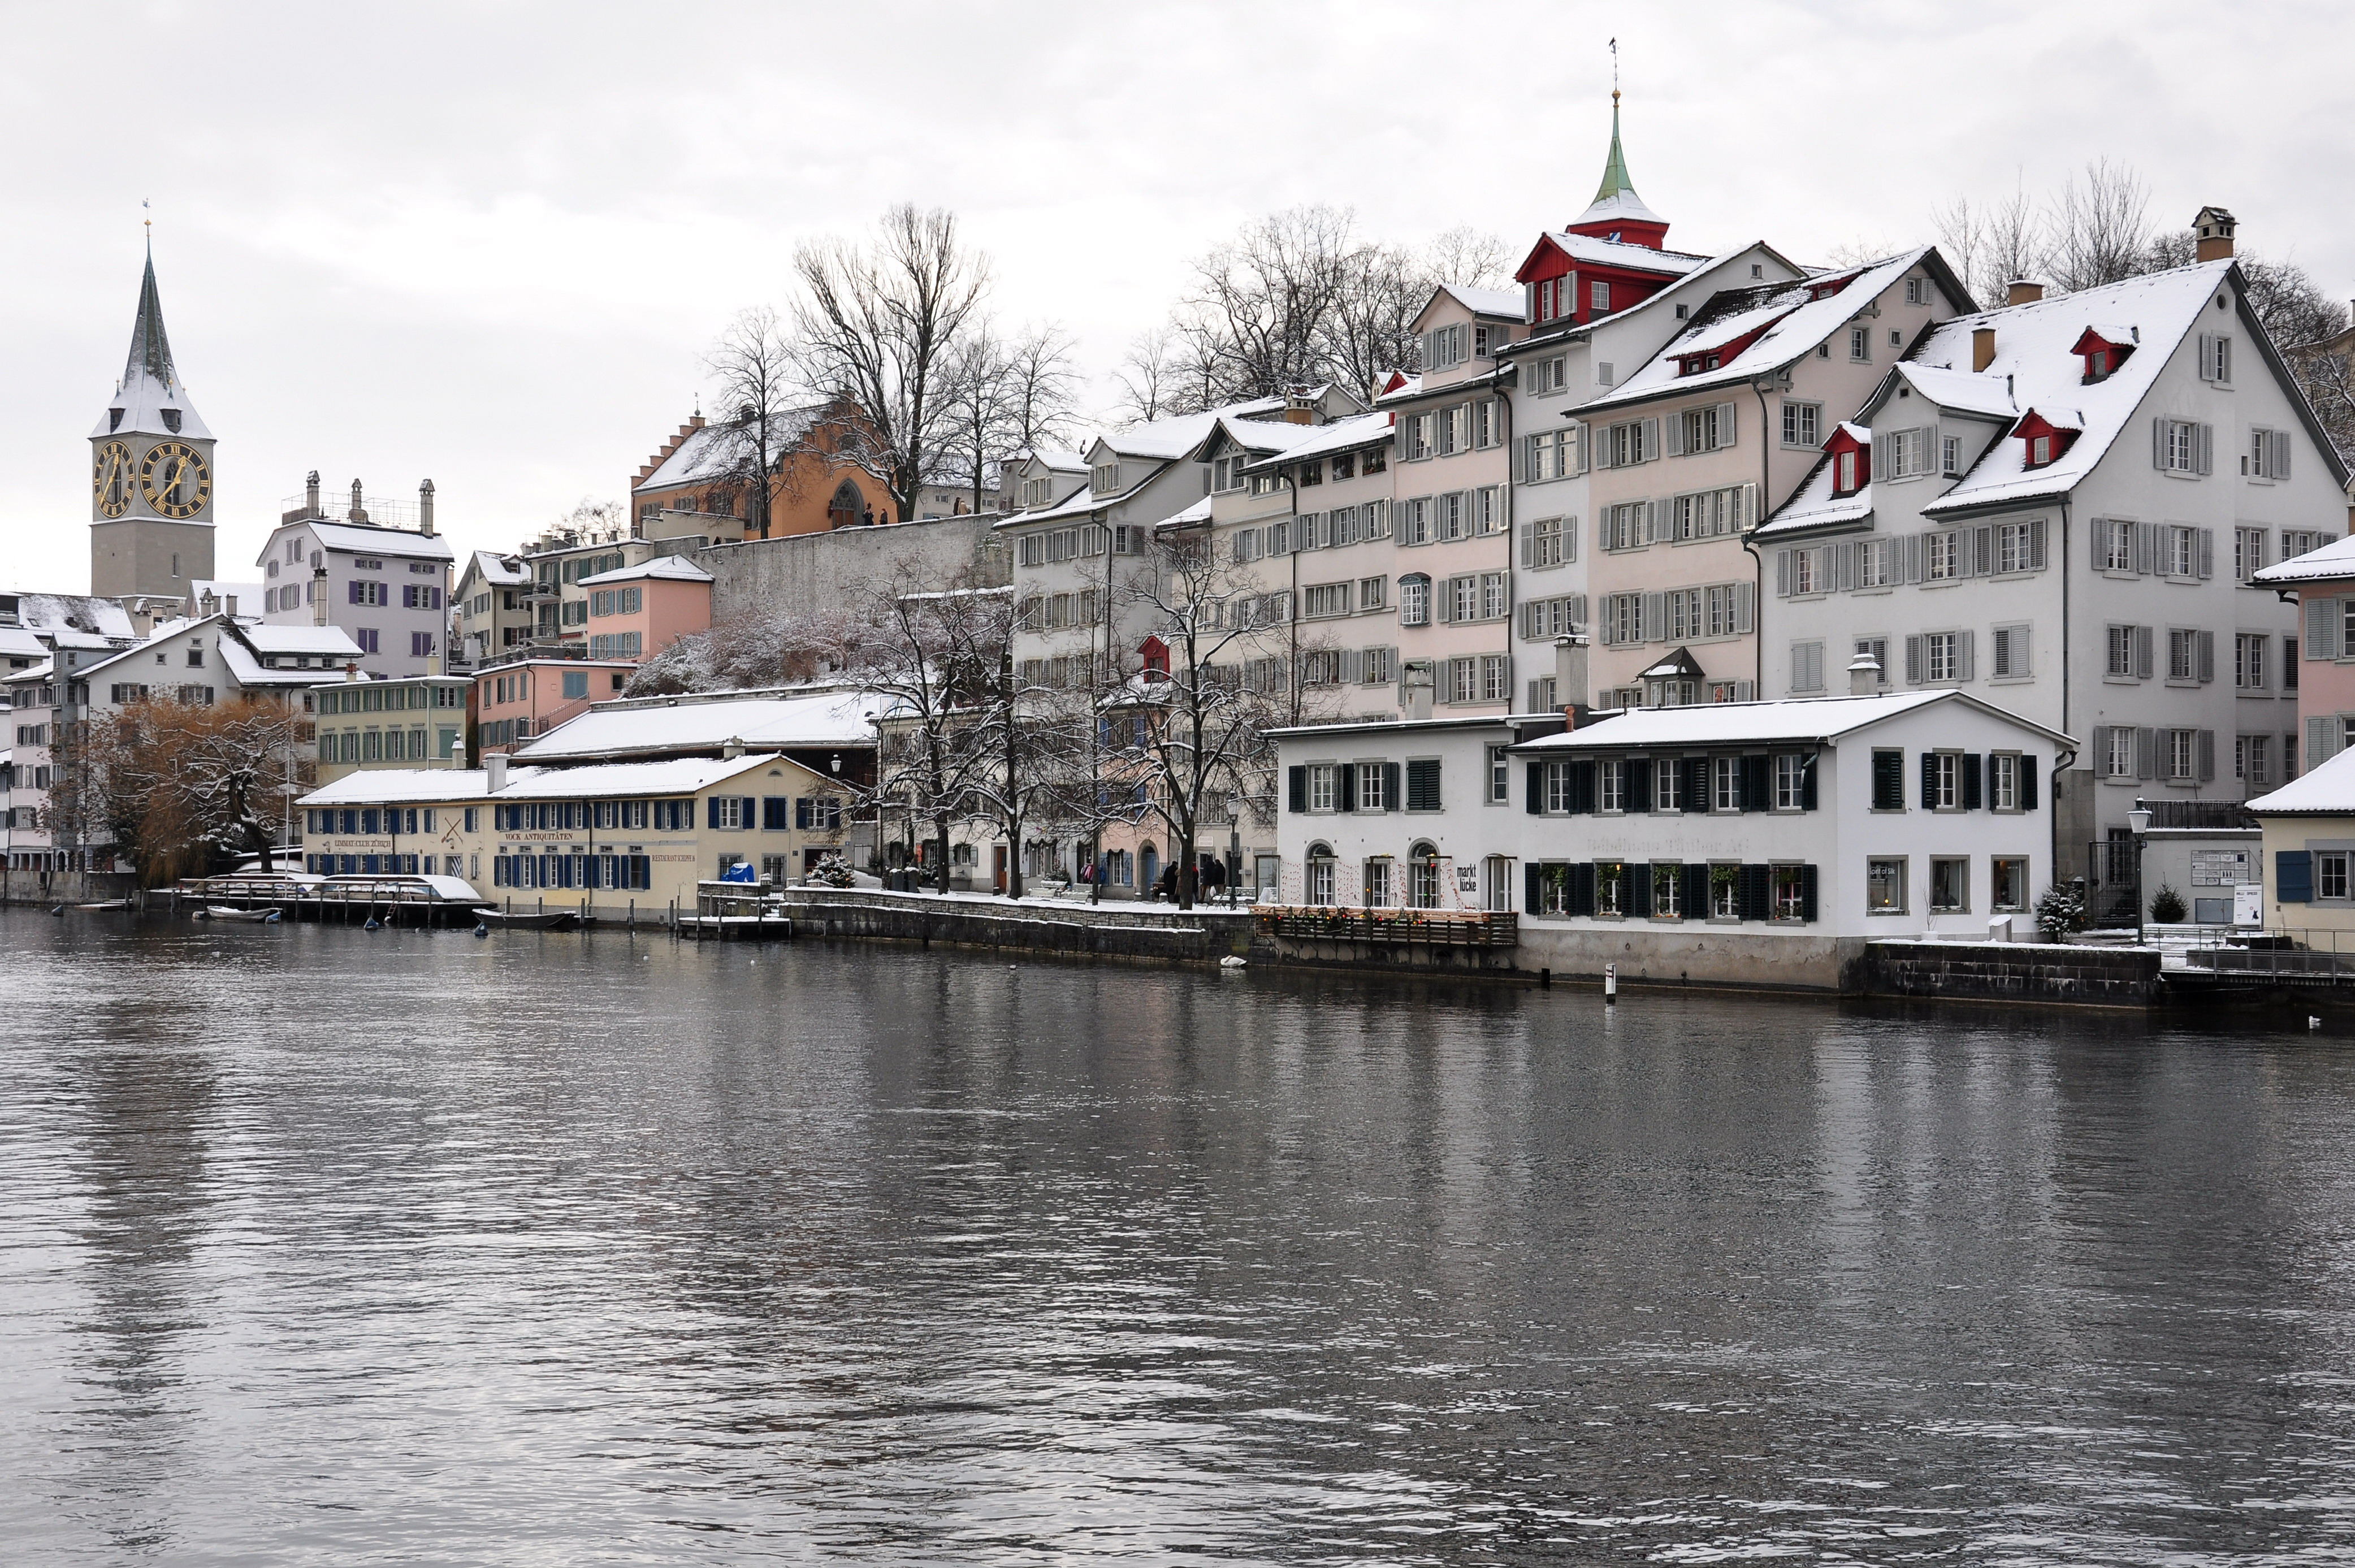 lake zurich online dating Meet eager singles when you join a free dating site in switzerland  these are the very reasons why online dating is so popular and when you join a dating site in switzerland, you can count on meeting some very exciting singles  zurich – singles in zurich pay attention to detail and will go out of their way to impress their dates.